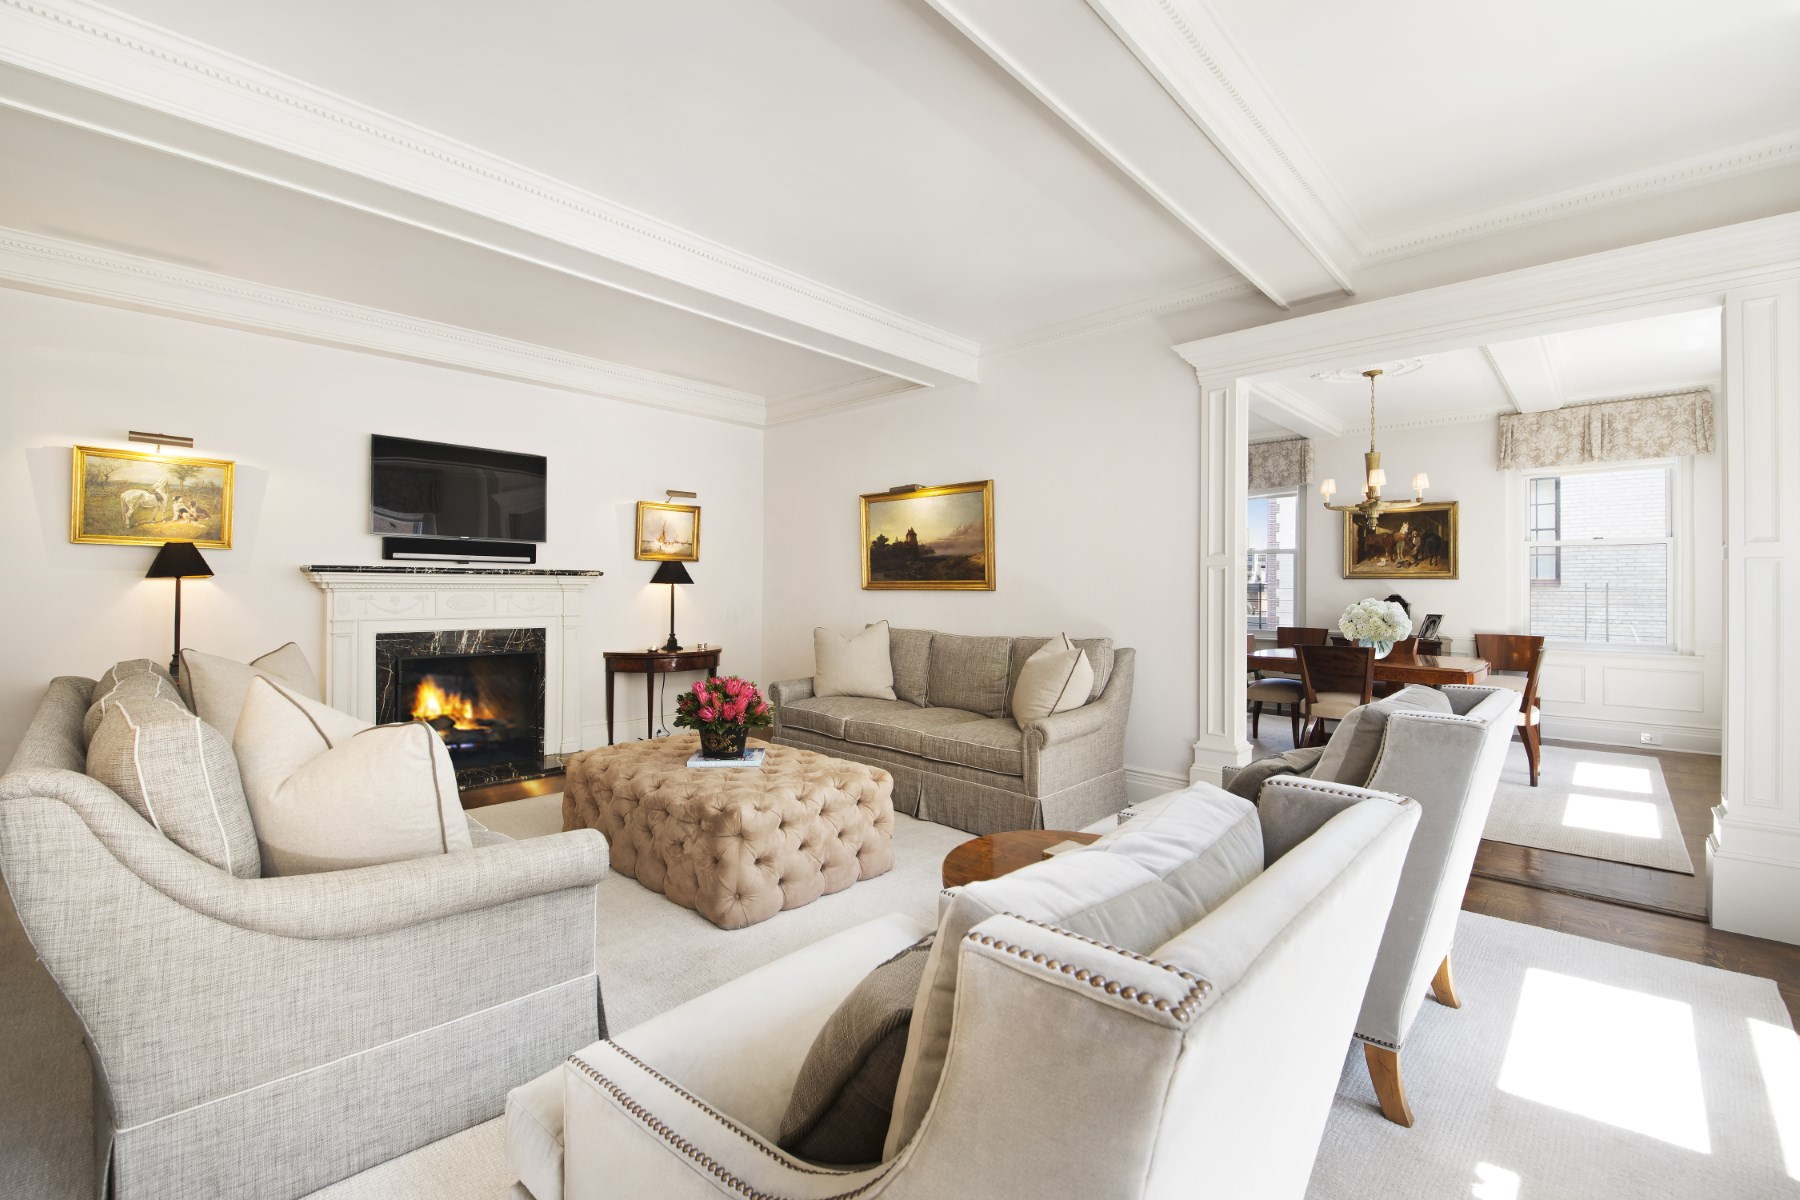 Co-op for Sale at 55 East 72nd Street Apt 12AN. 55 East 72nd Street Apt 12AN New York, New York 10021 United States